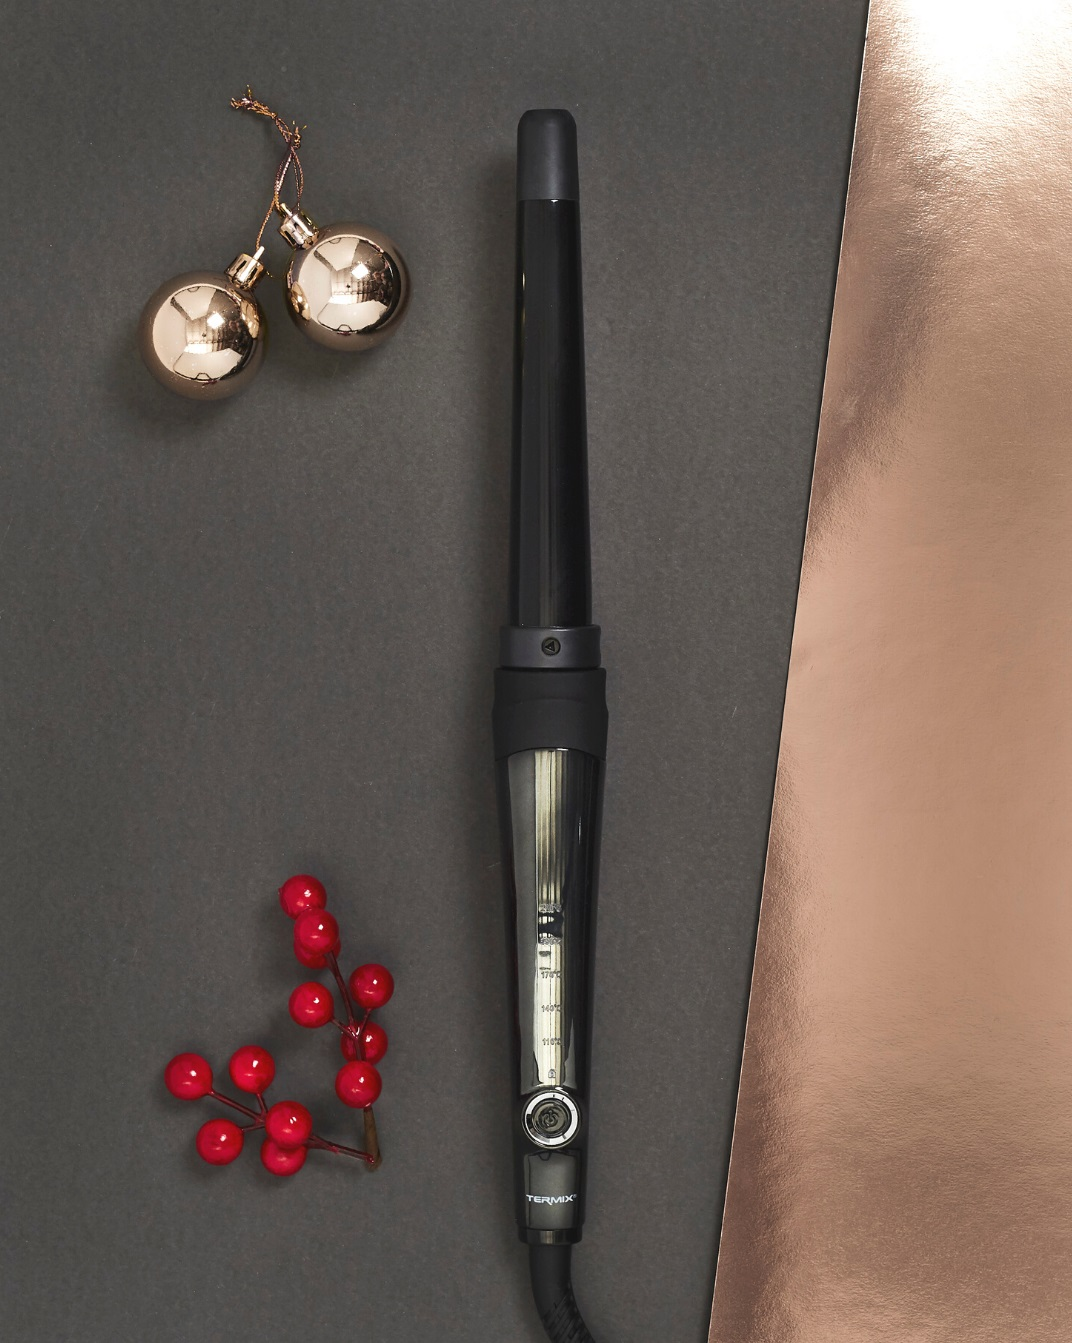 Rizador Termix Evolution Curling Wand regalo Navidad